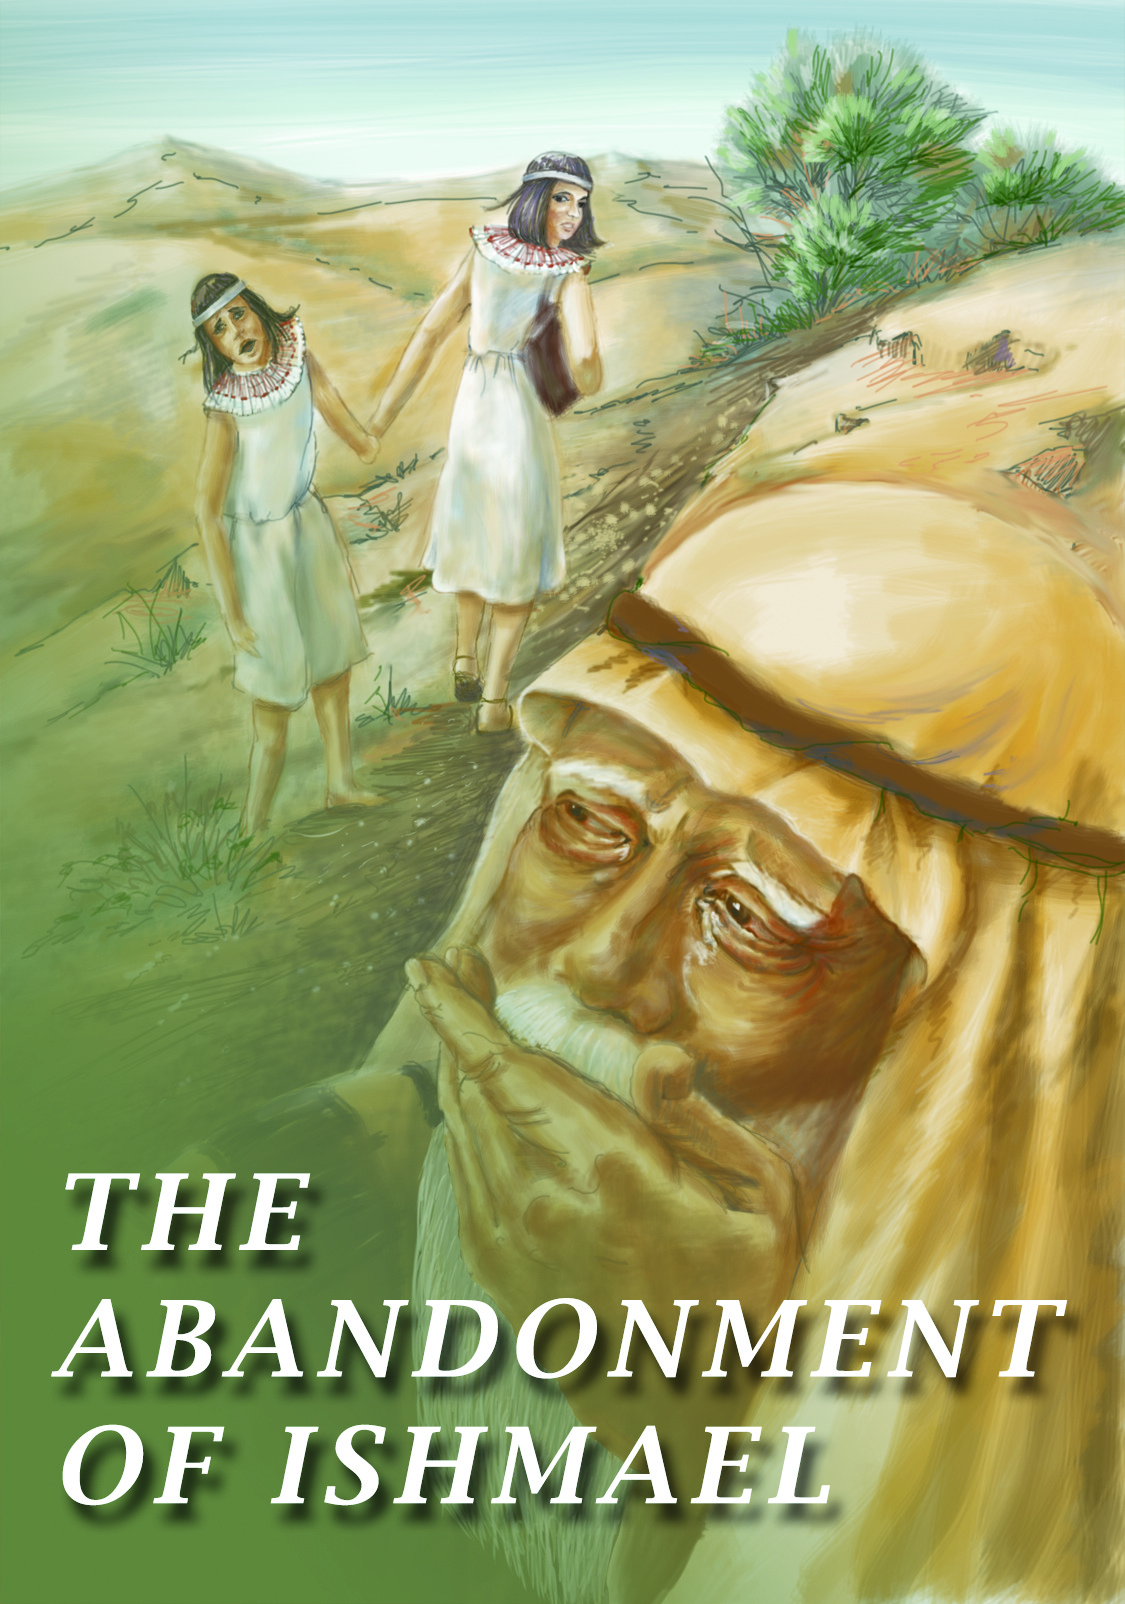 The Abandonment of Ishmael